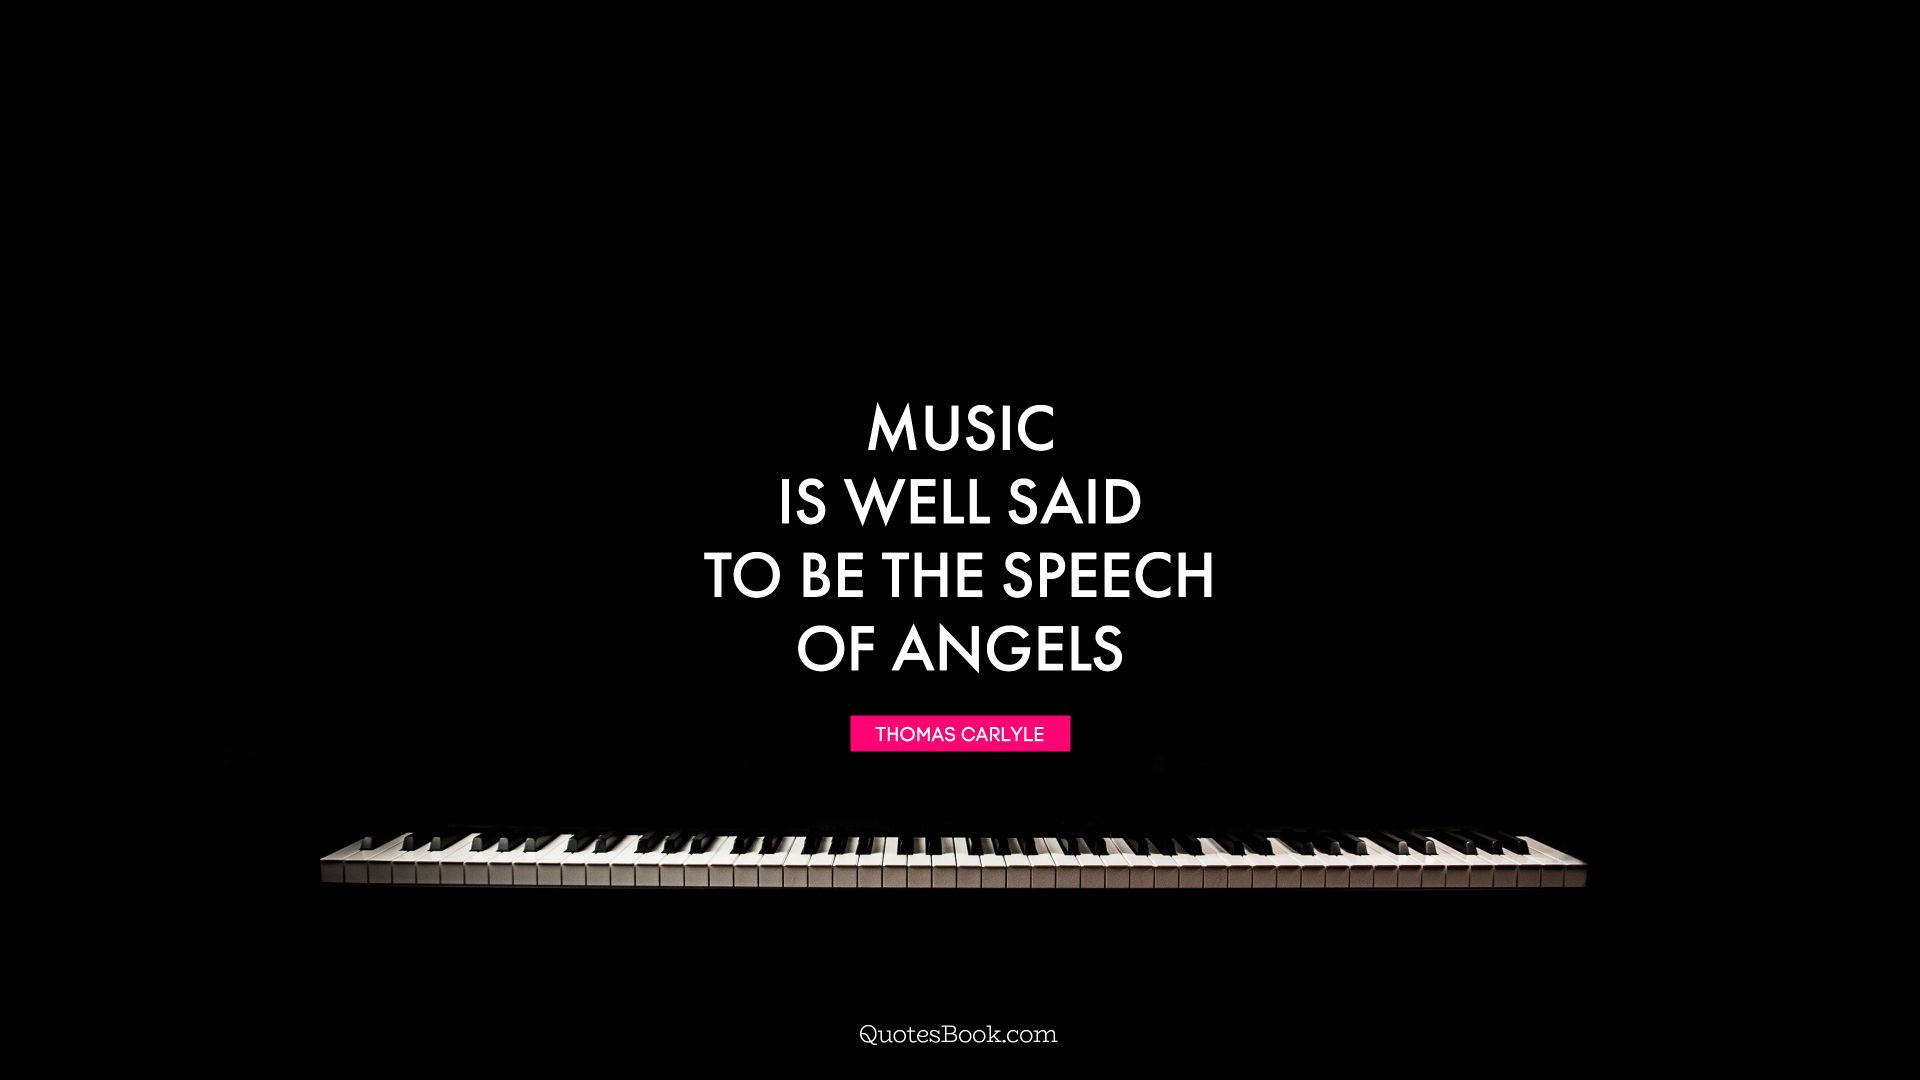 Music is well said to be the speech of angels. - Quote by Thomas Carlyle